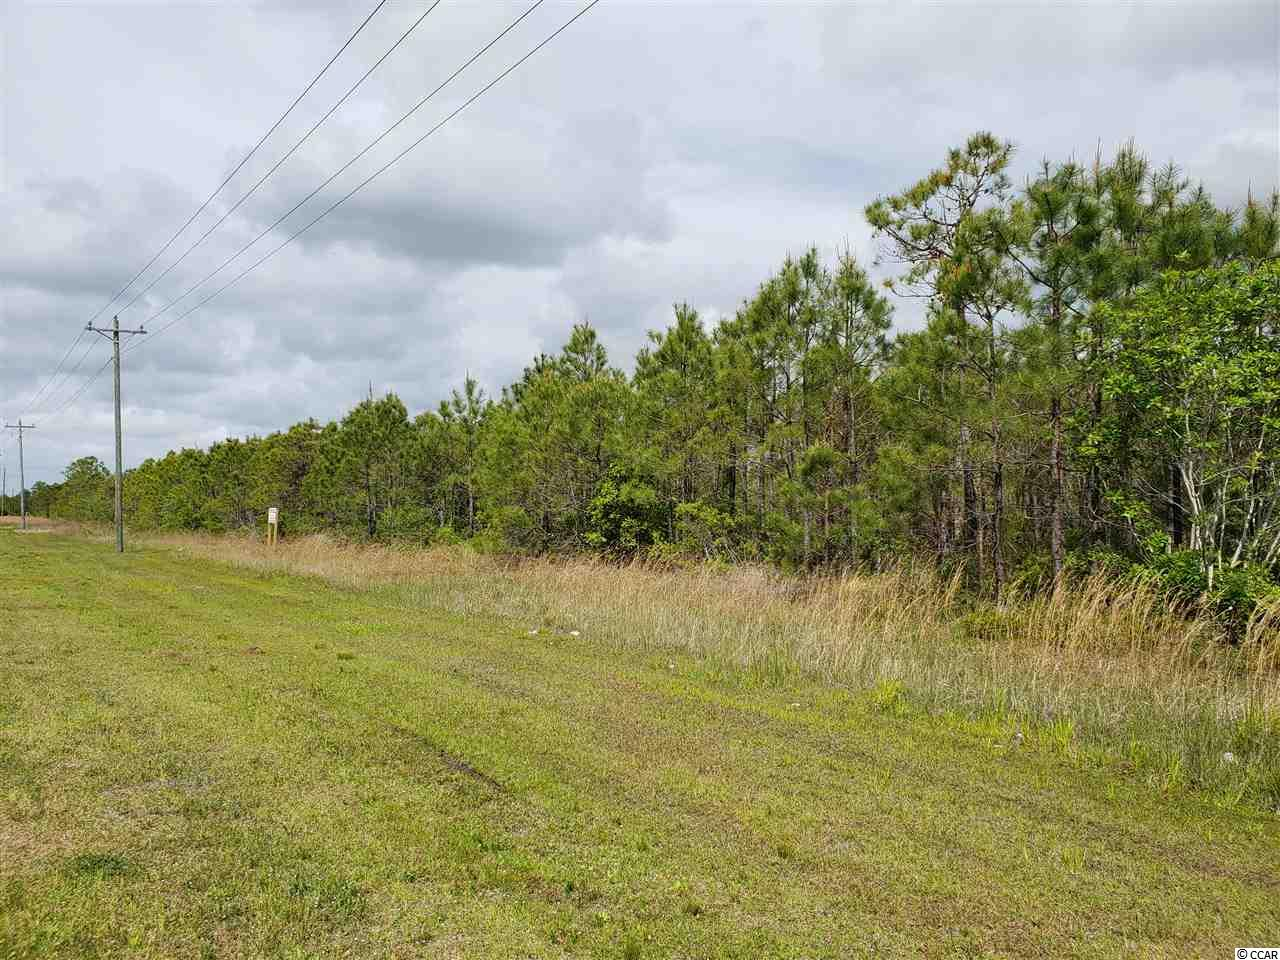 12.25 acres across the street from Barefoot Resort, located on Water Tower Rd. near the highway 22 and highway 31 intersection.  An amazing location for any commercial use or a subdivision.